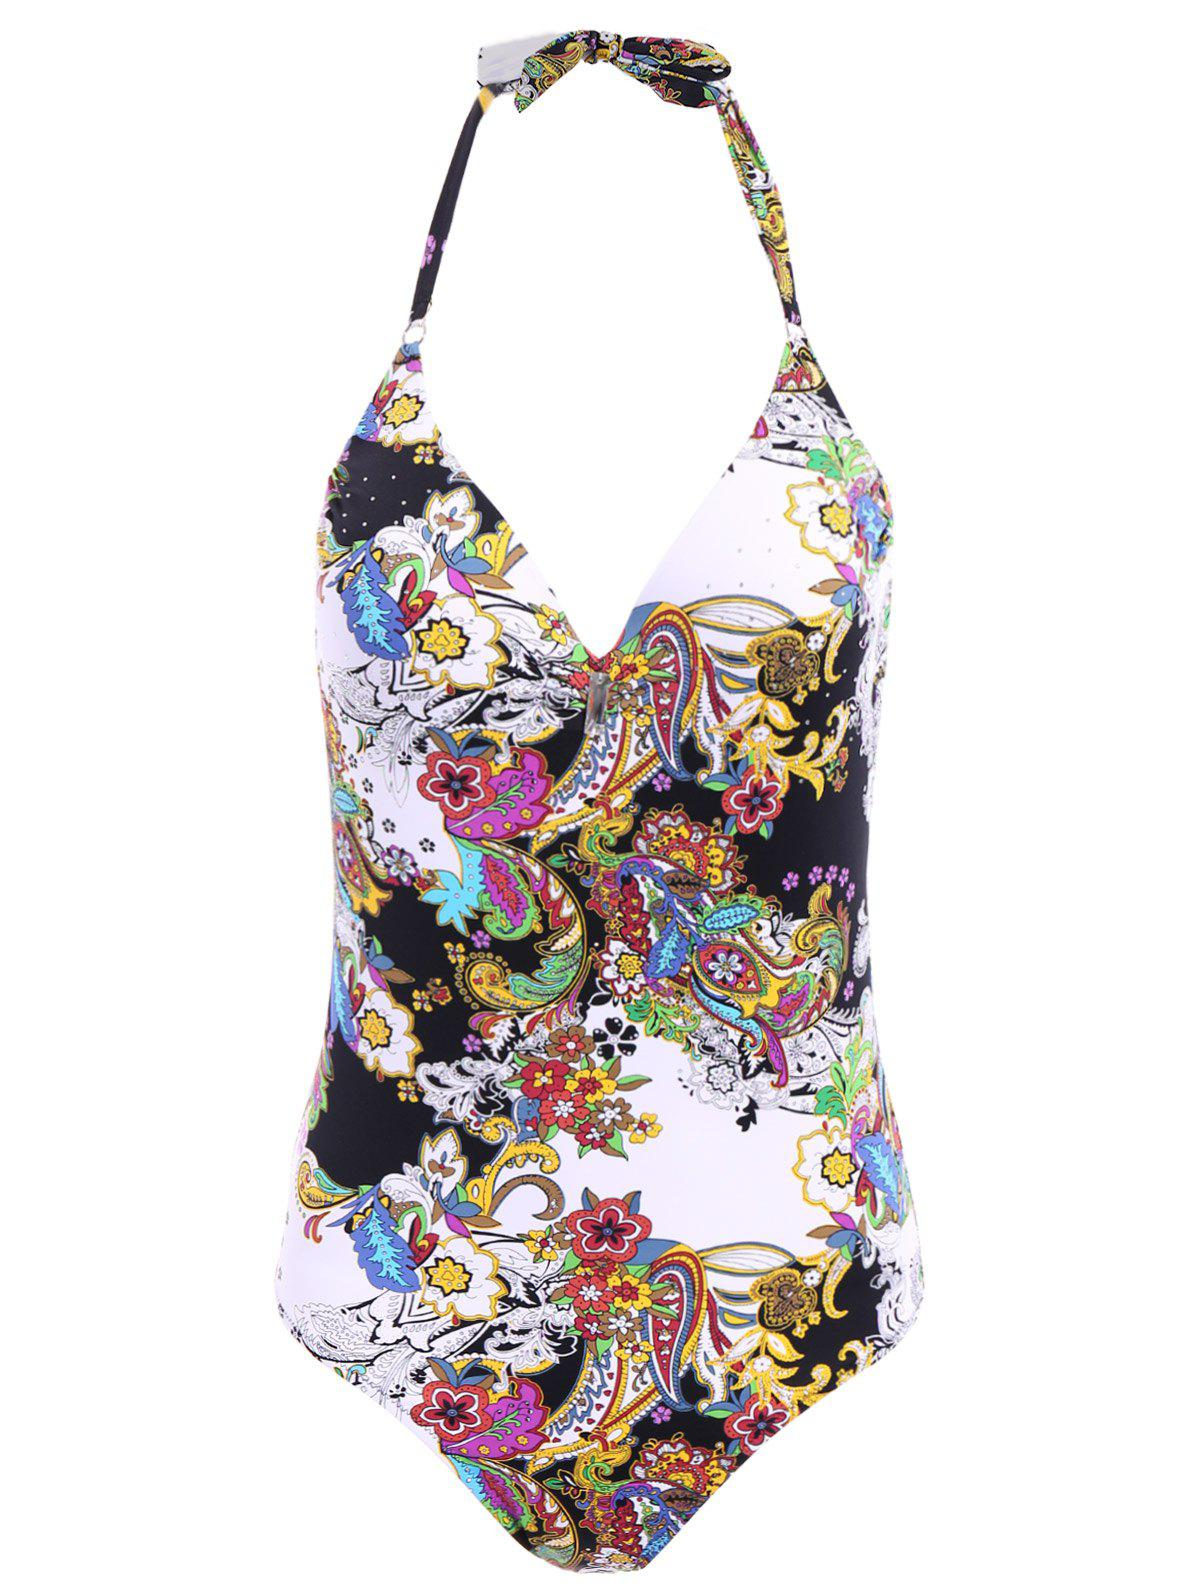 Chic Halter Floral Print Low Cut One-Piece Women's Swimwear chic halter floral print low cut one piece women s swimwear